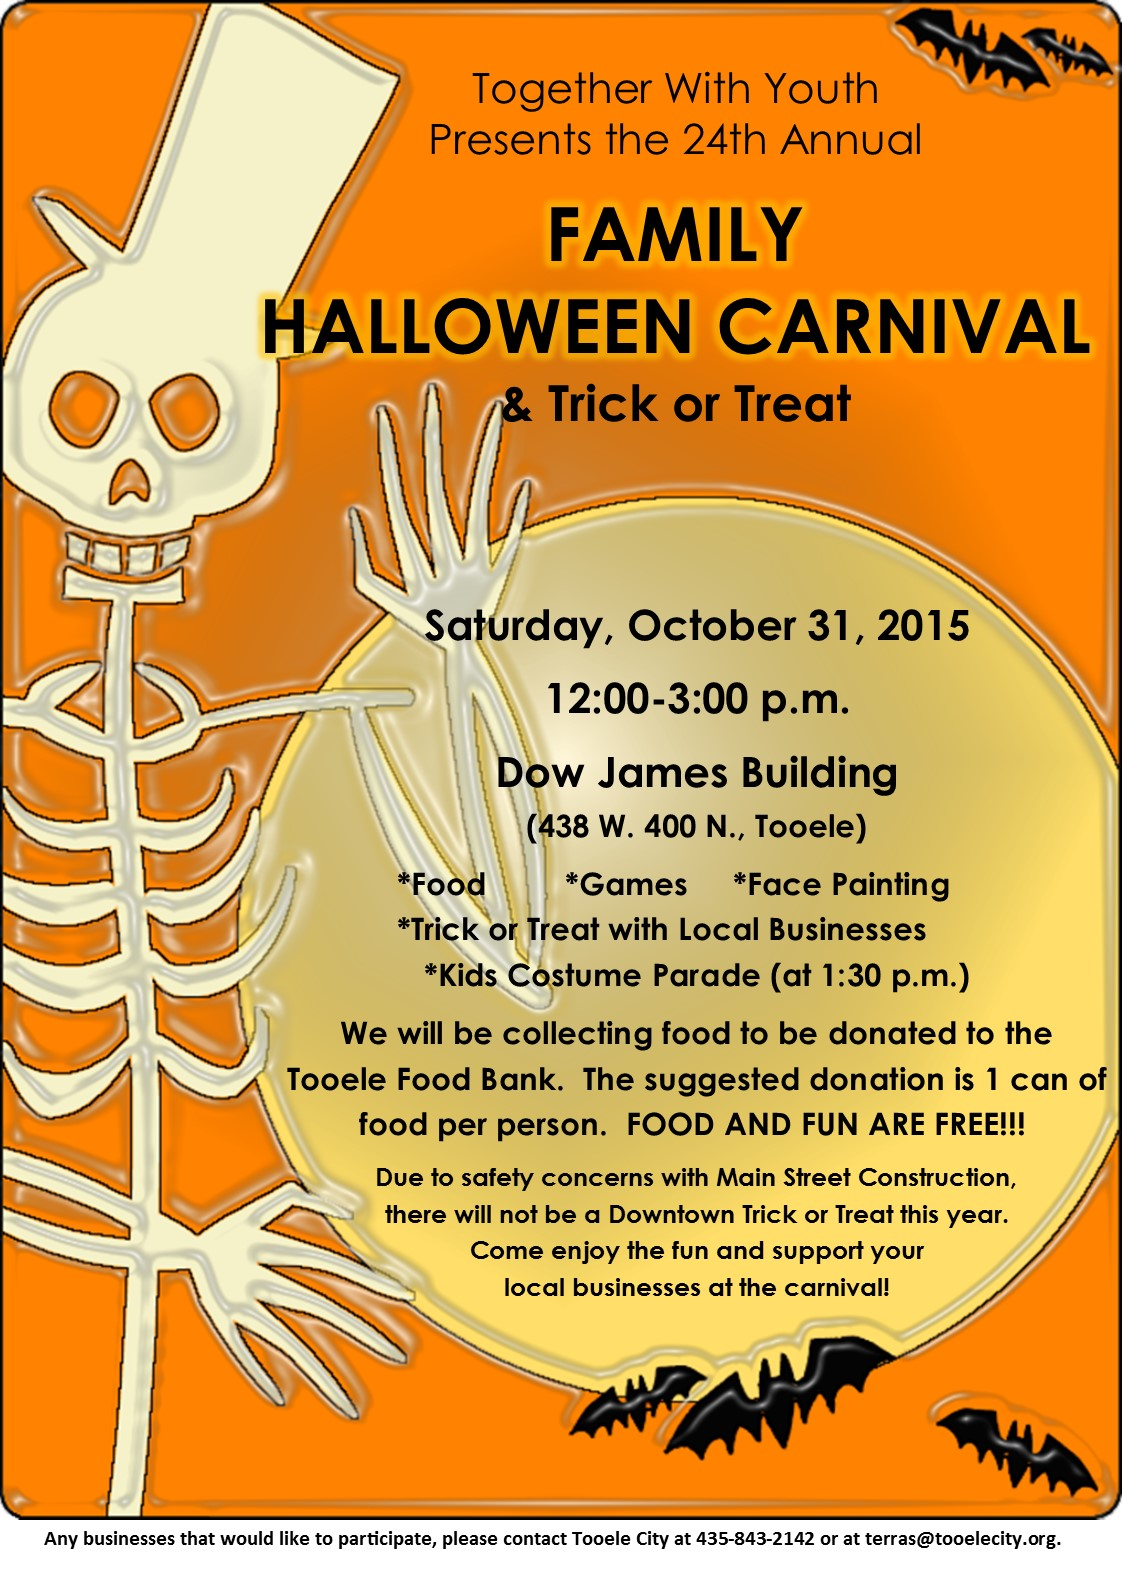 family halloween carnival and trick-or-treat 2015 | tooele city